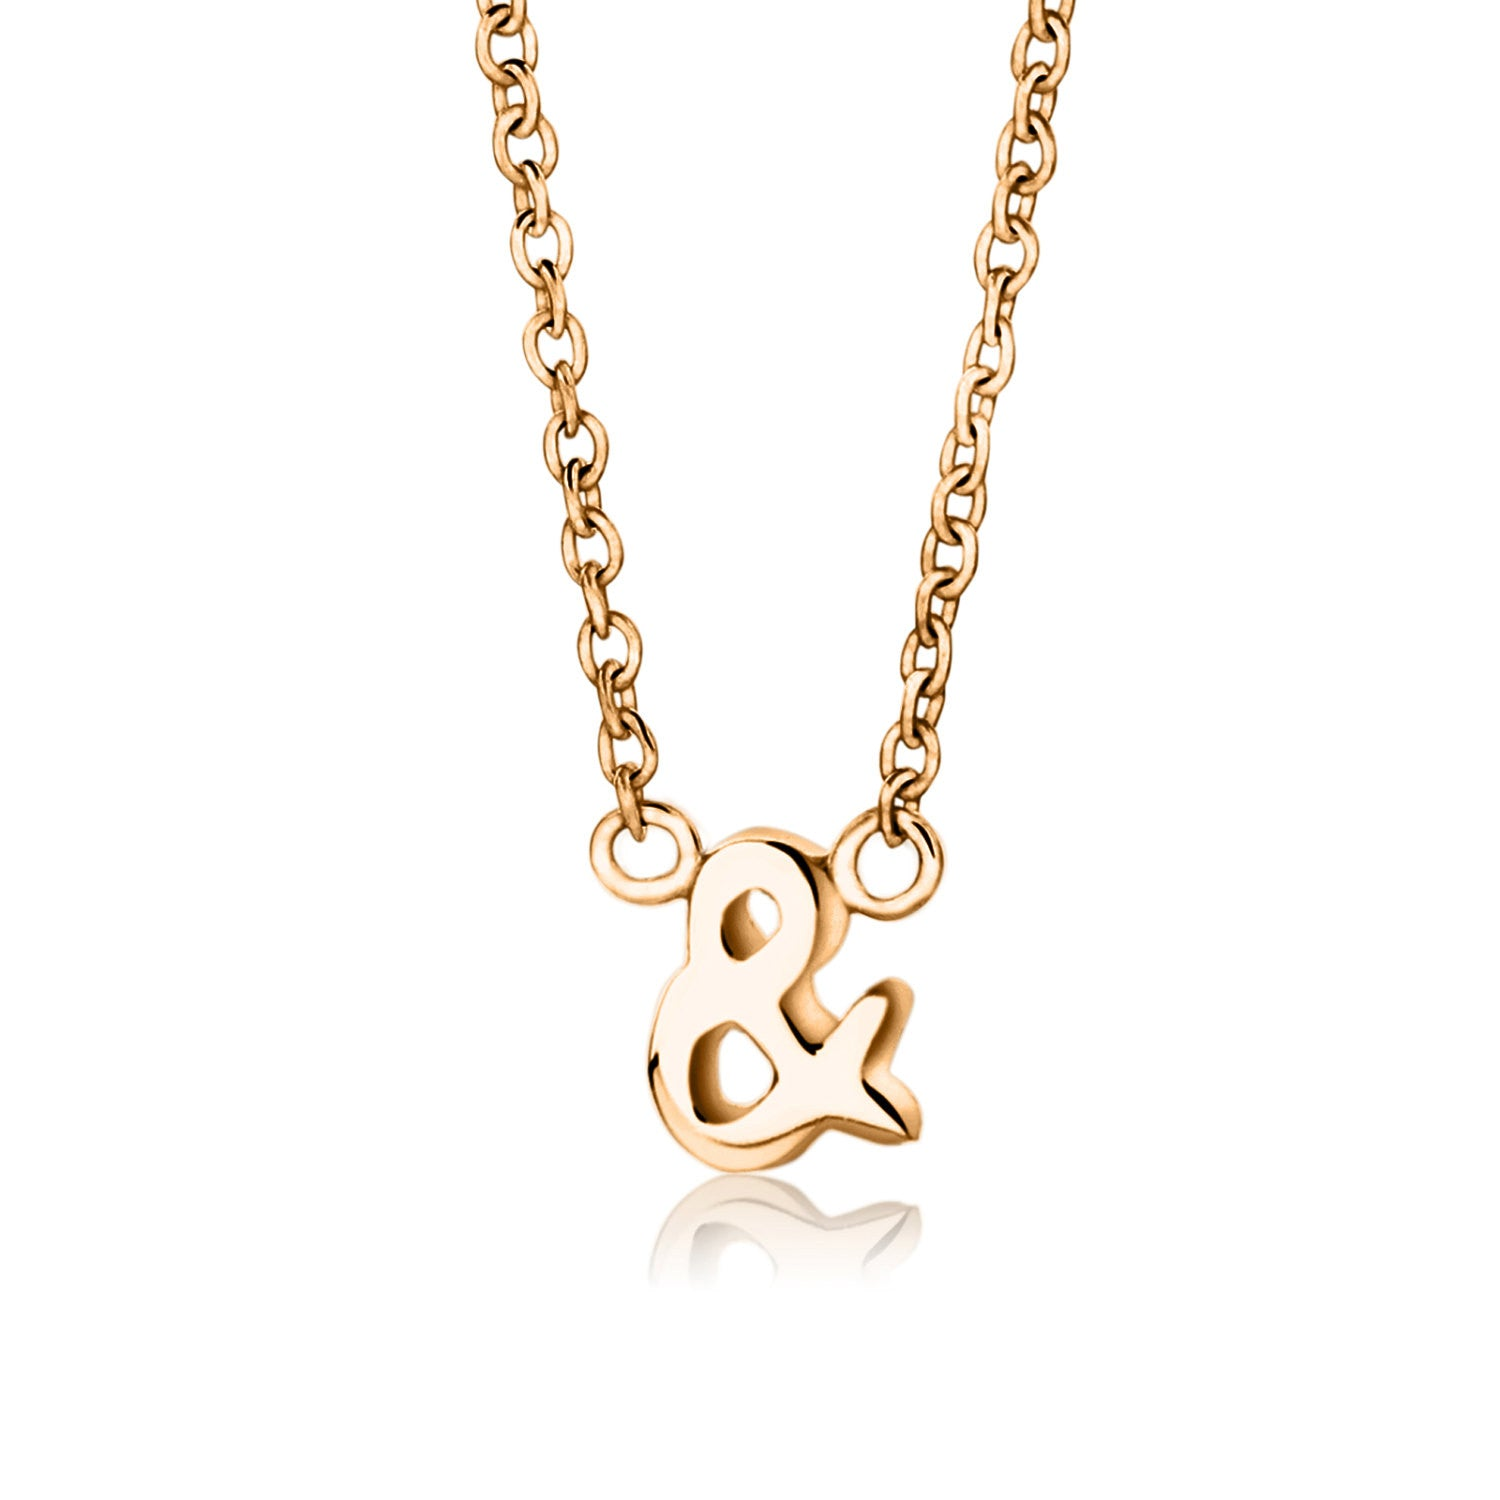 Necklace; Jewelry; Charm; Ampersand; Valentines' Day Gift idea; Jewelry for girls; Symbol ampersand charm necklace